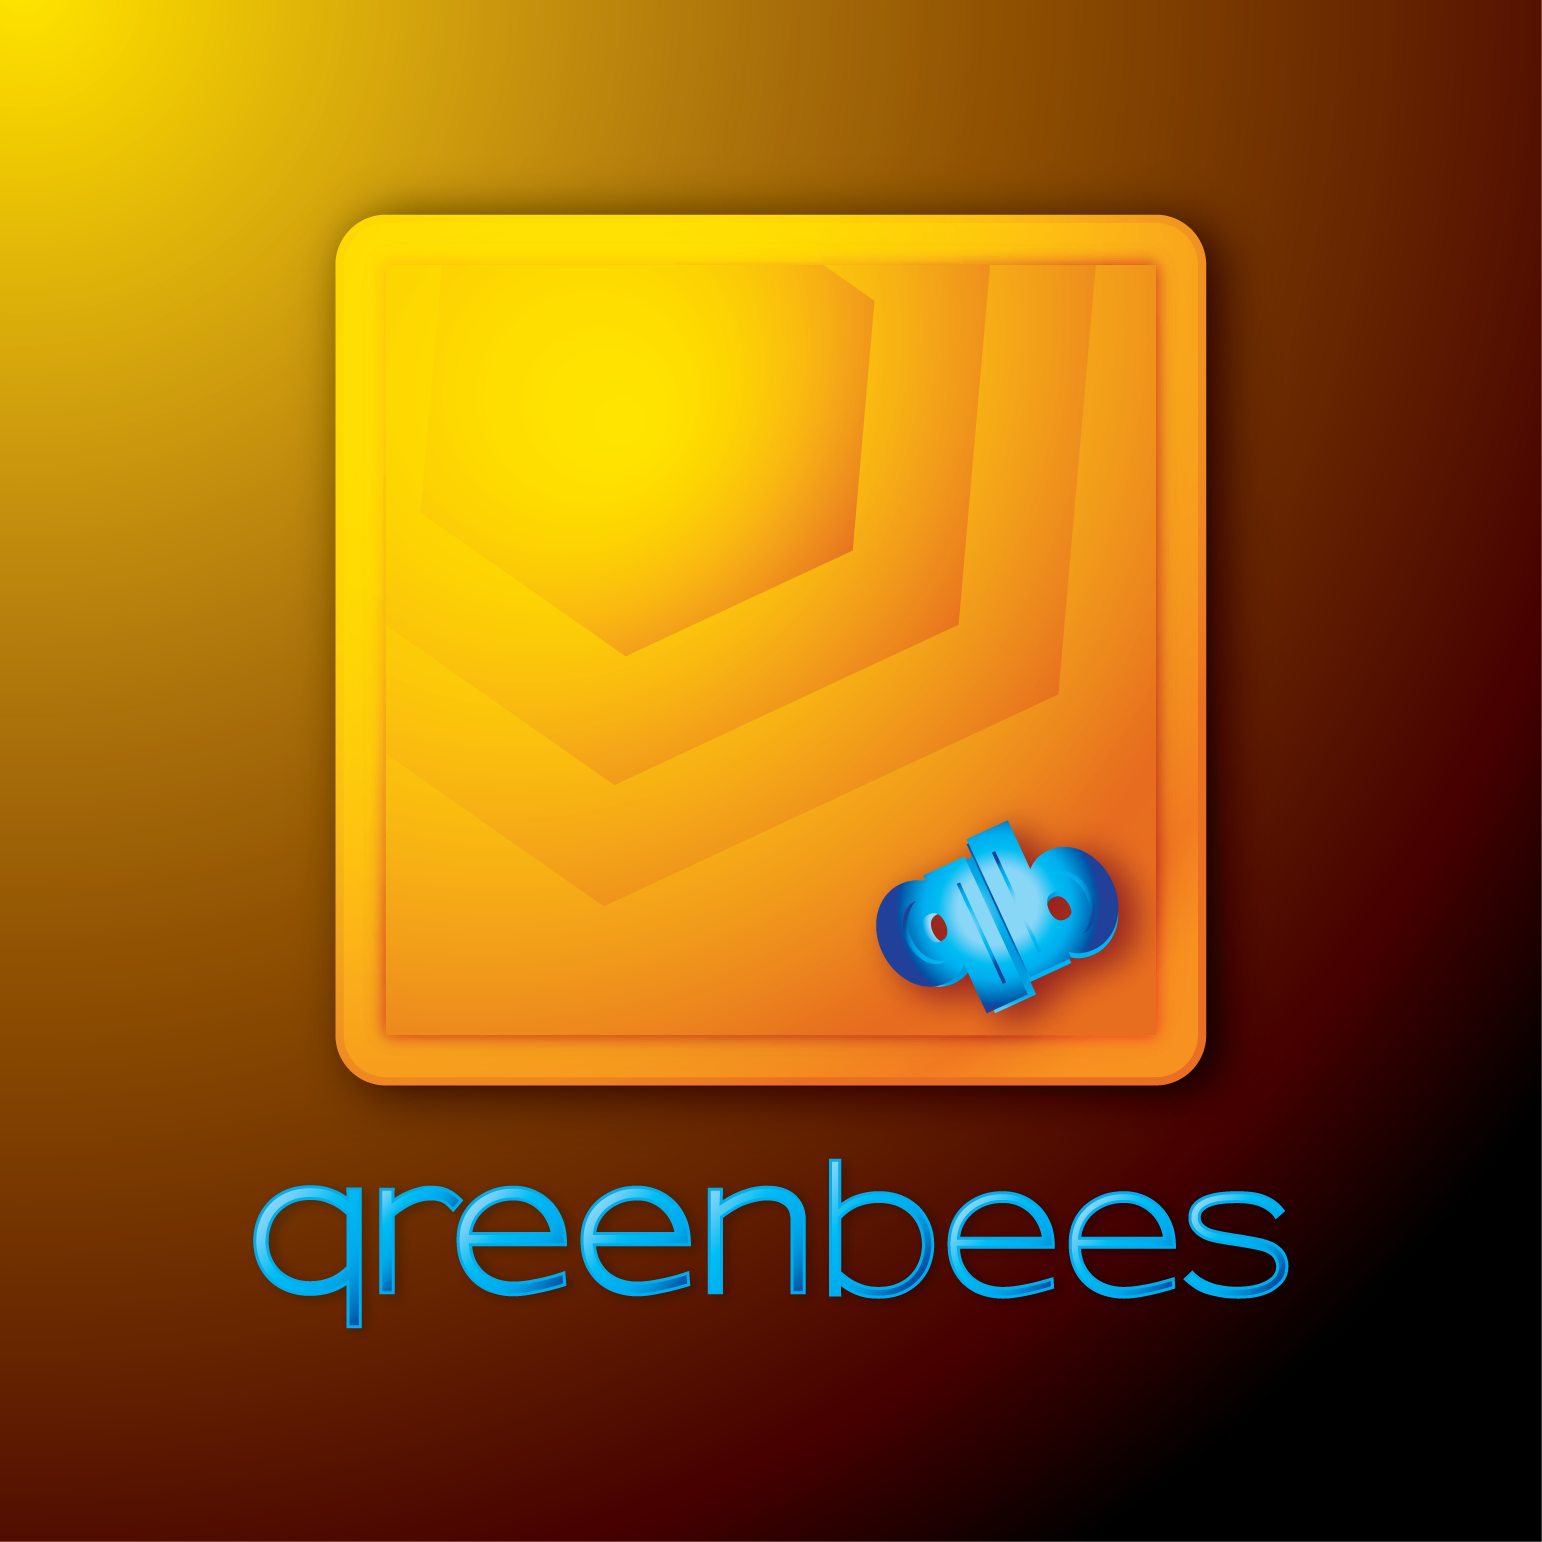 Logo Design by Teresa Abney - Entry No. 256 in the Logo Design Contest Greenbees Logo Design.